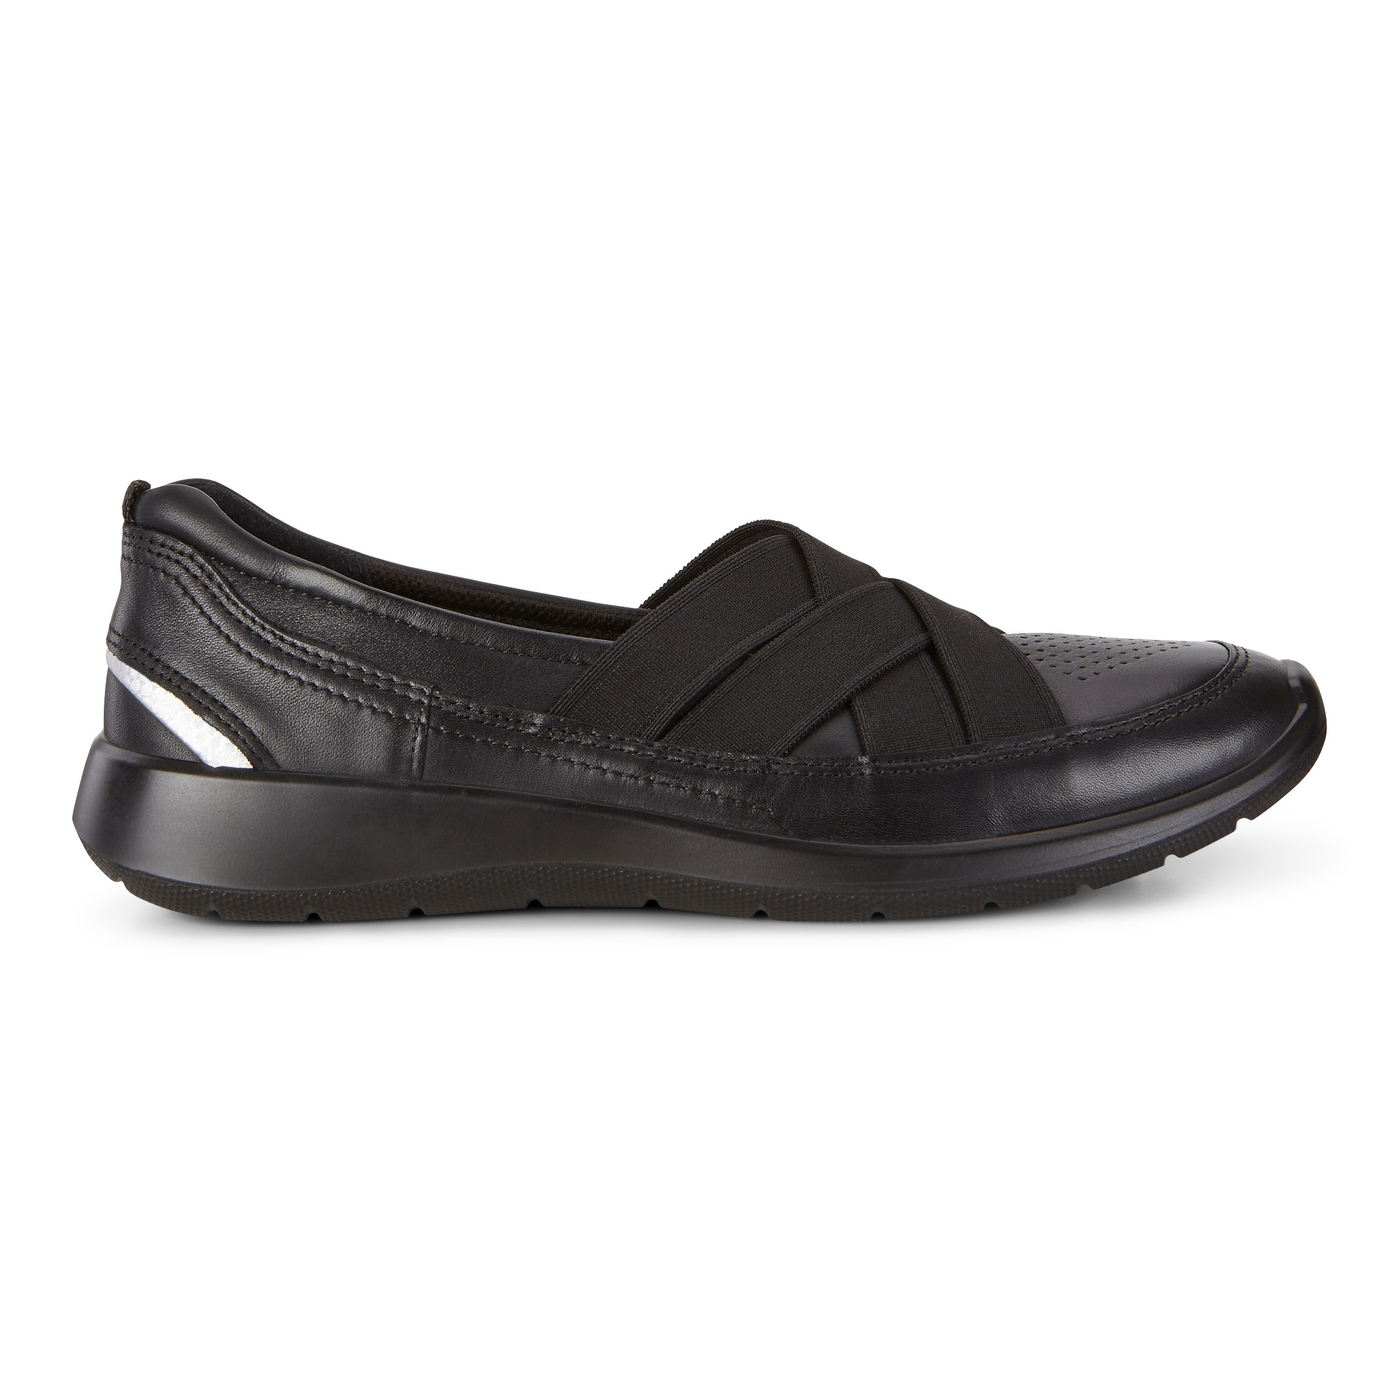 ECCO SOFT 5 Slip-on